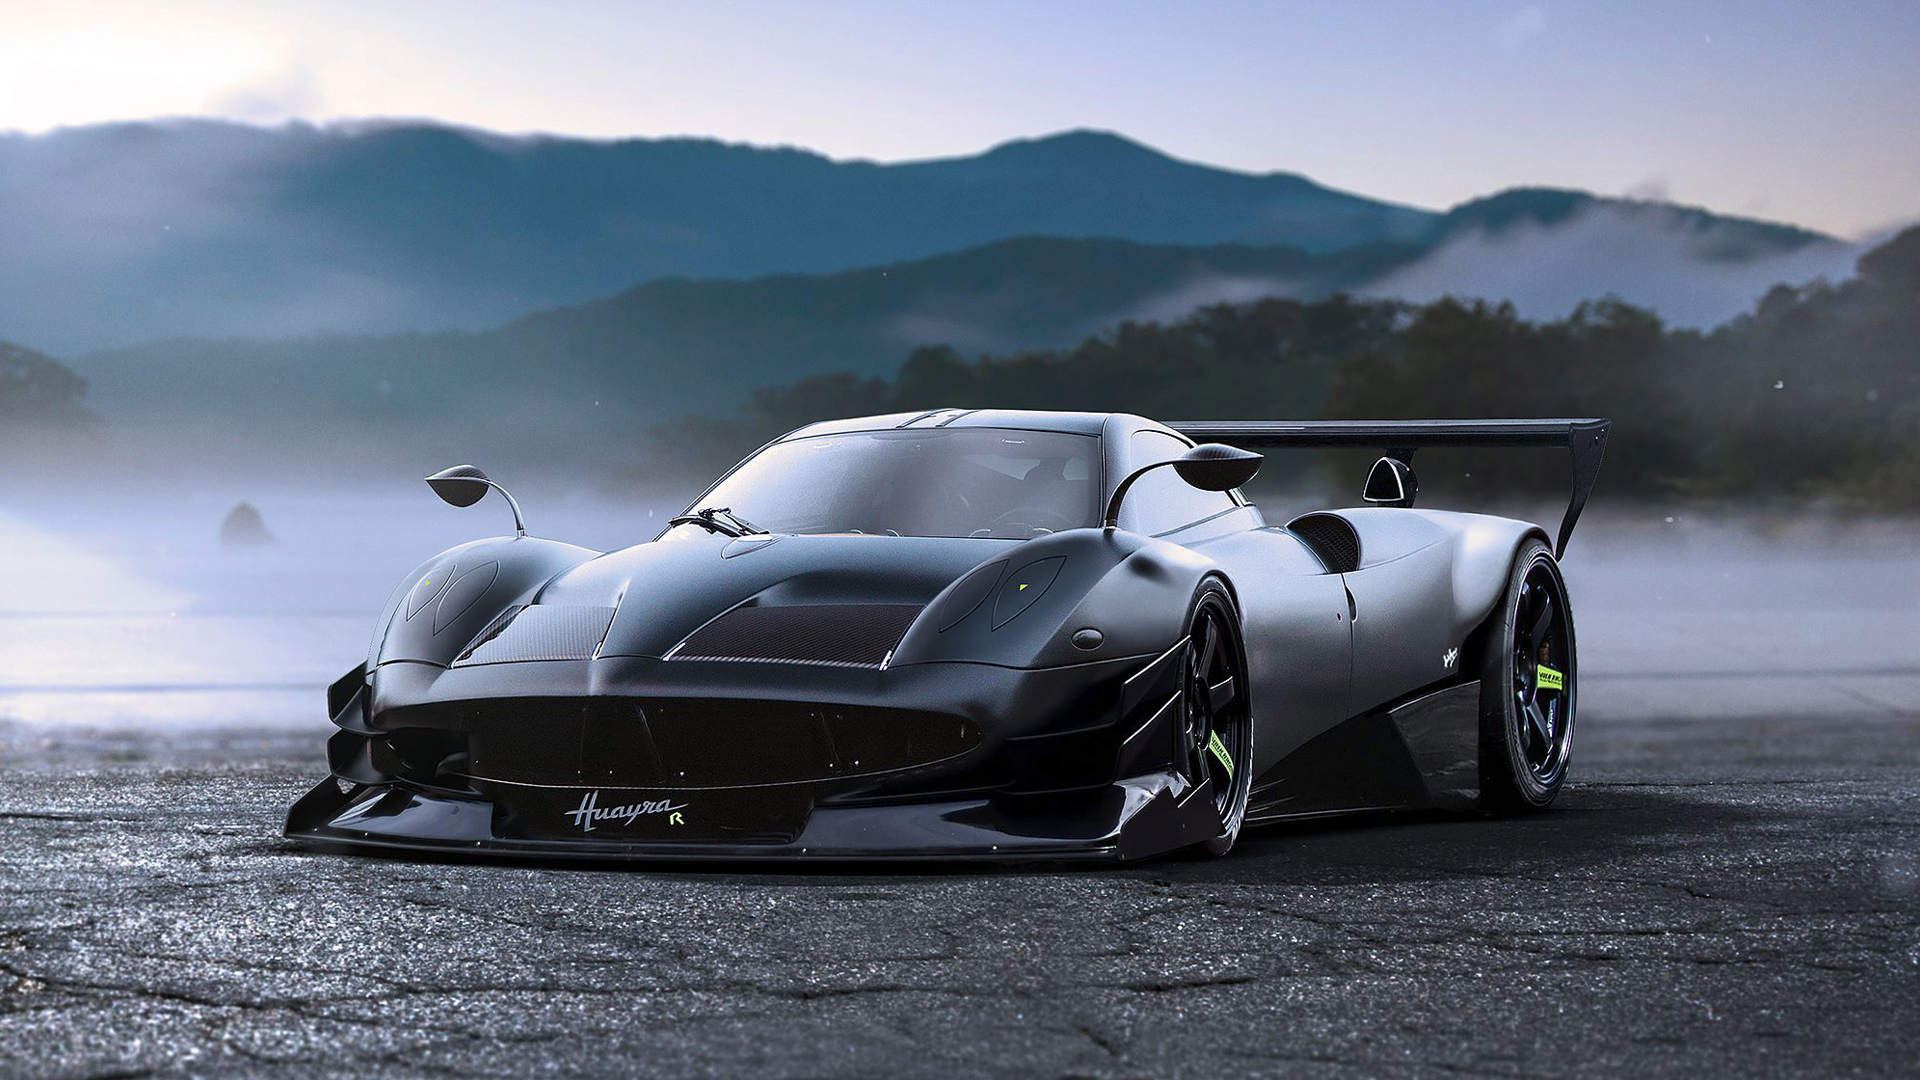 Ferrari Car Wallpaper For Desktop Pagani Huayra R Concept Wallpaper Hd Car Wallpapers Id